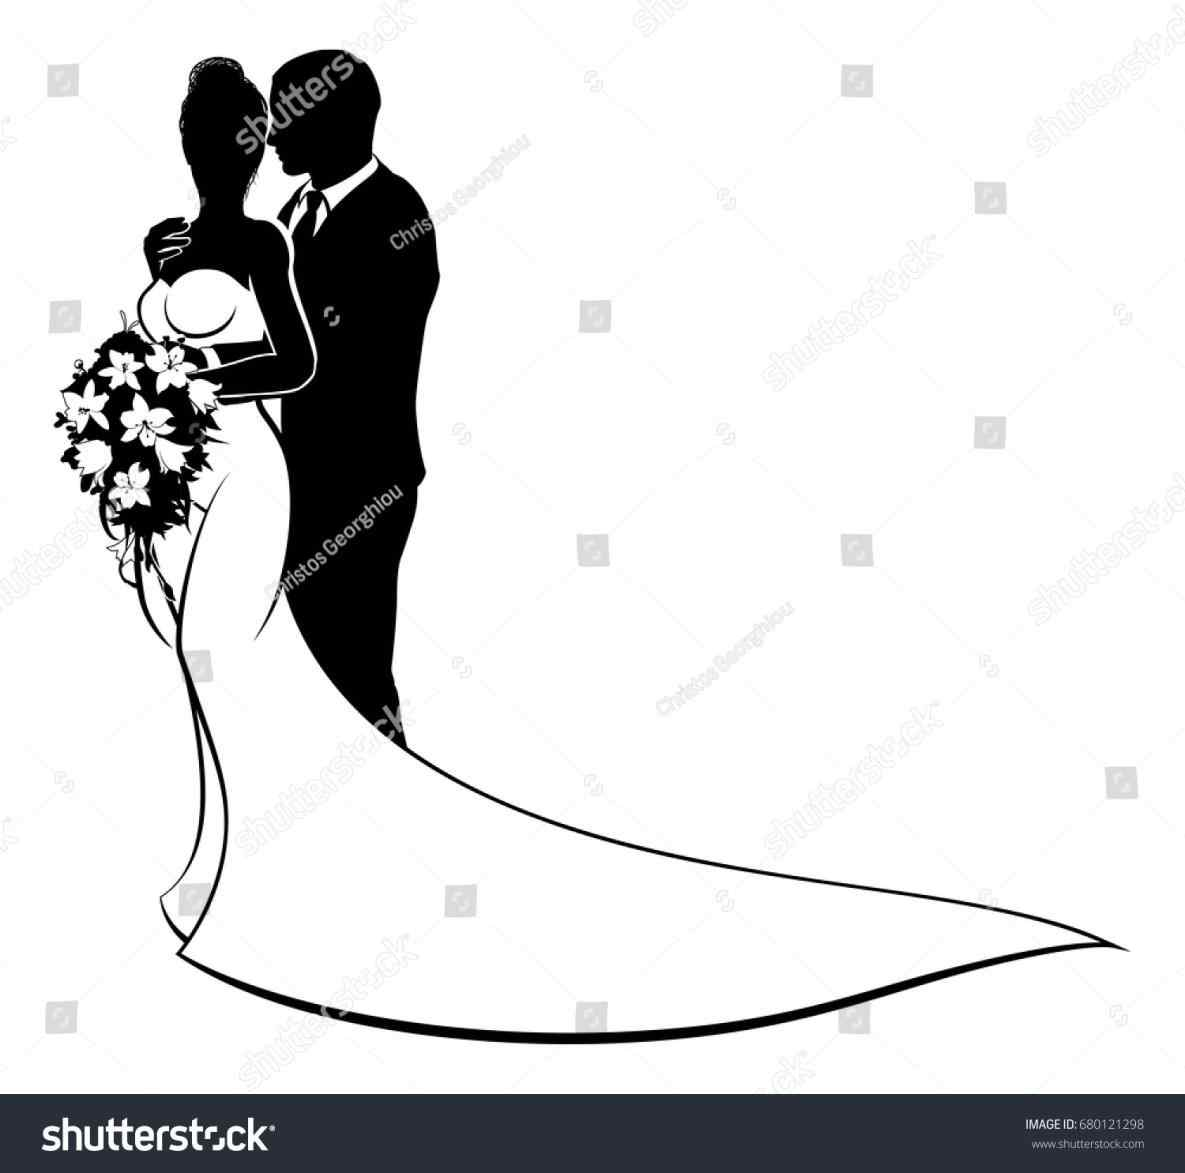 1185x1173 Web Kissing Bride And Groom Silhouette Clipart Black And White